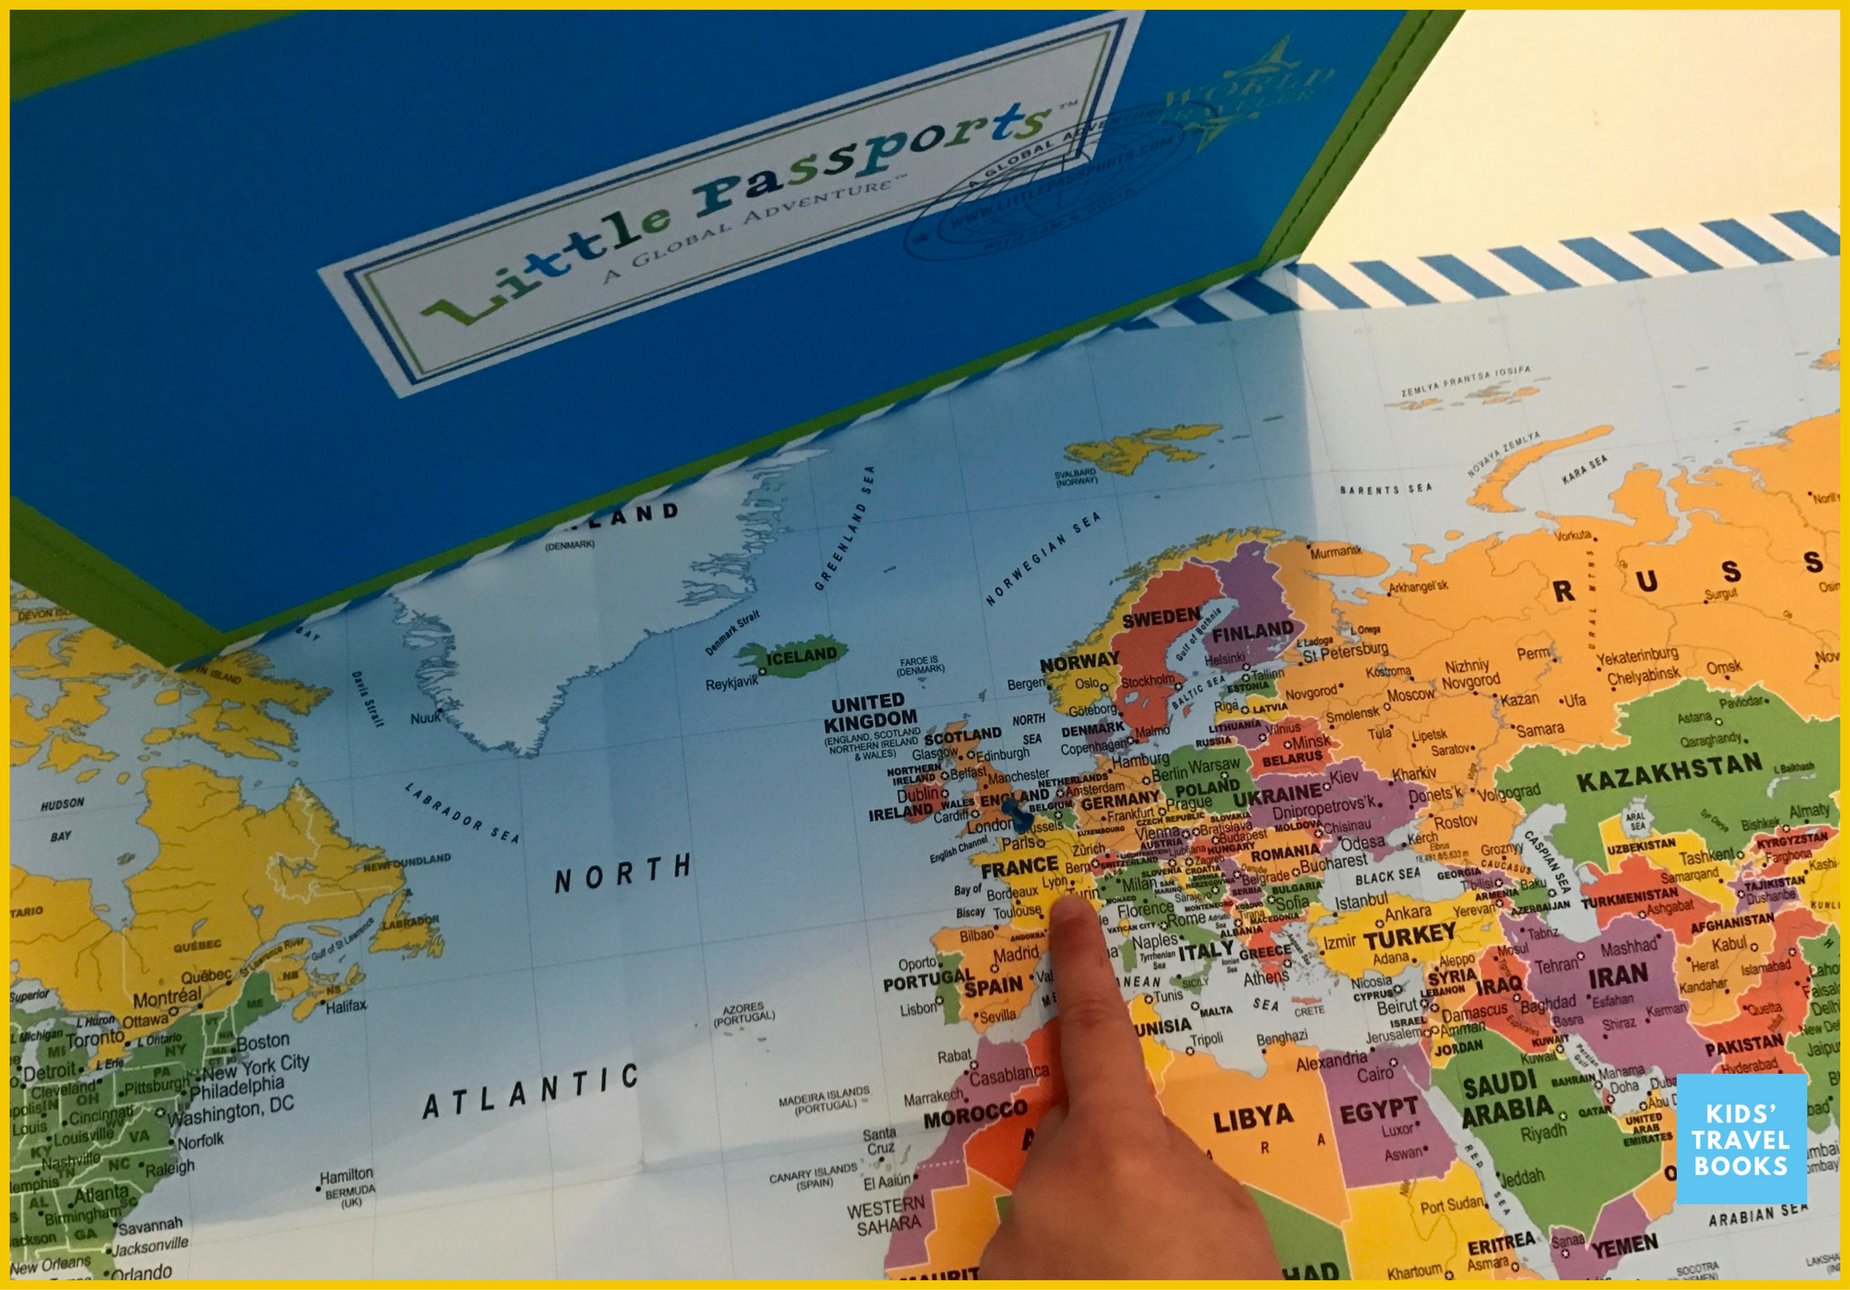 A review of Little Passports France subscription box.